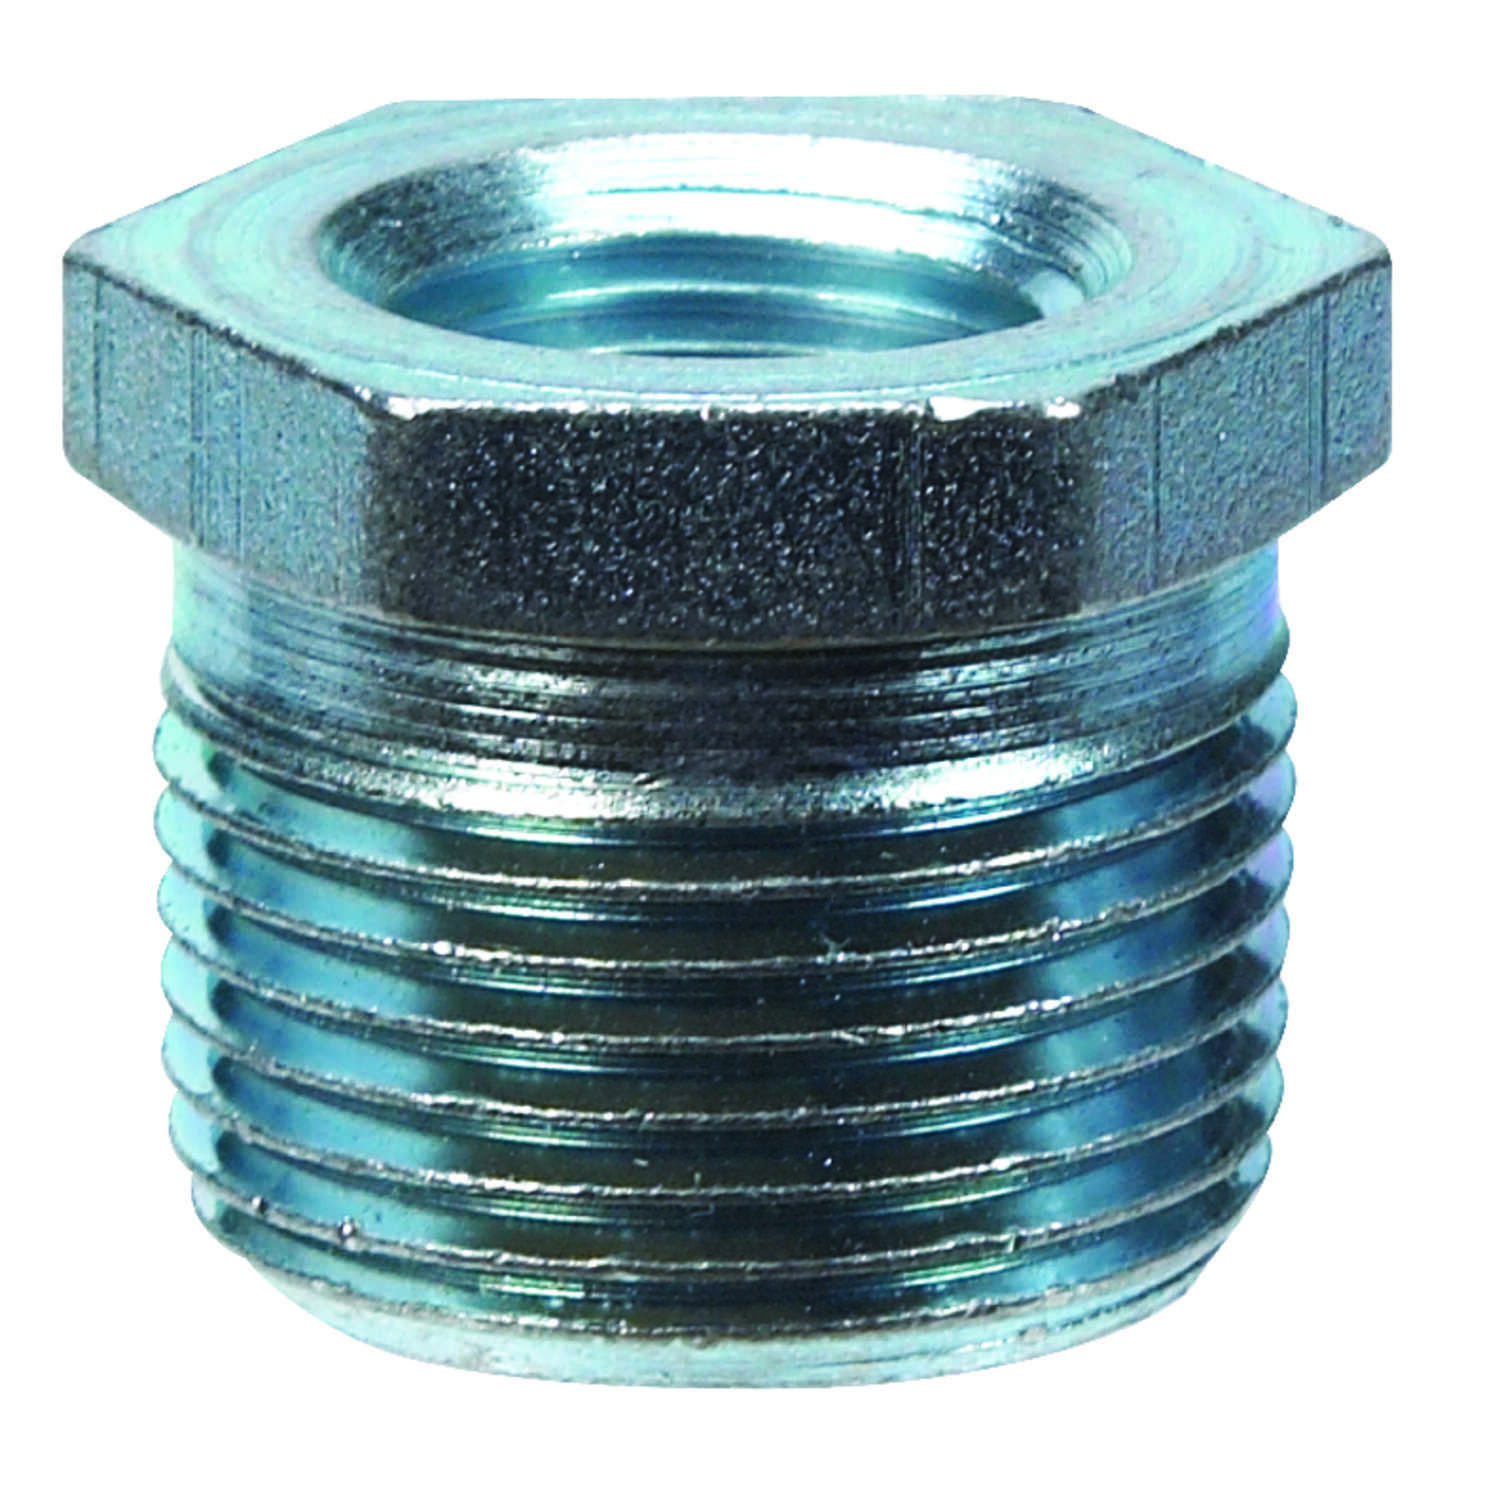 Billco  3/4 in. MPT  1/4 in. Dia. MPT  Galvanized Steel  Hex Bushing